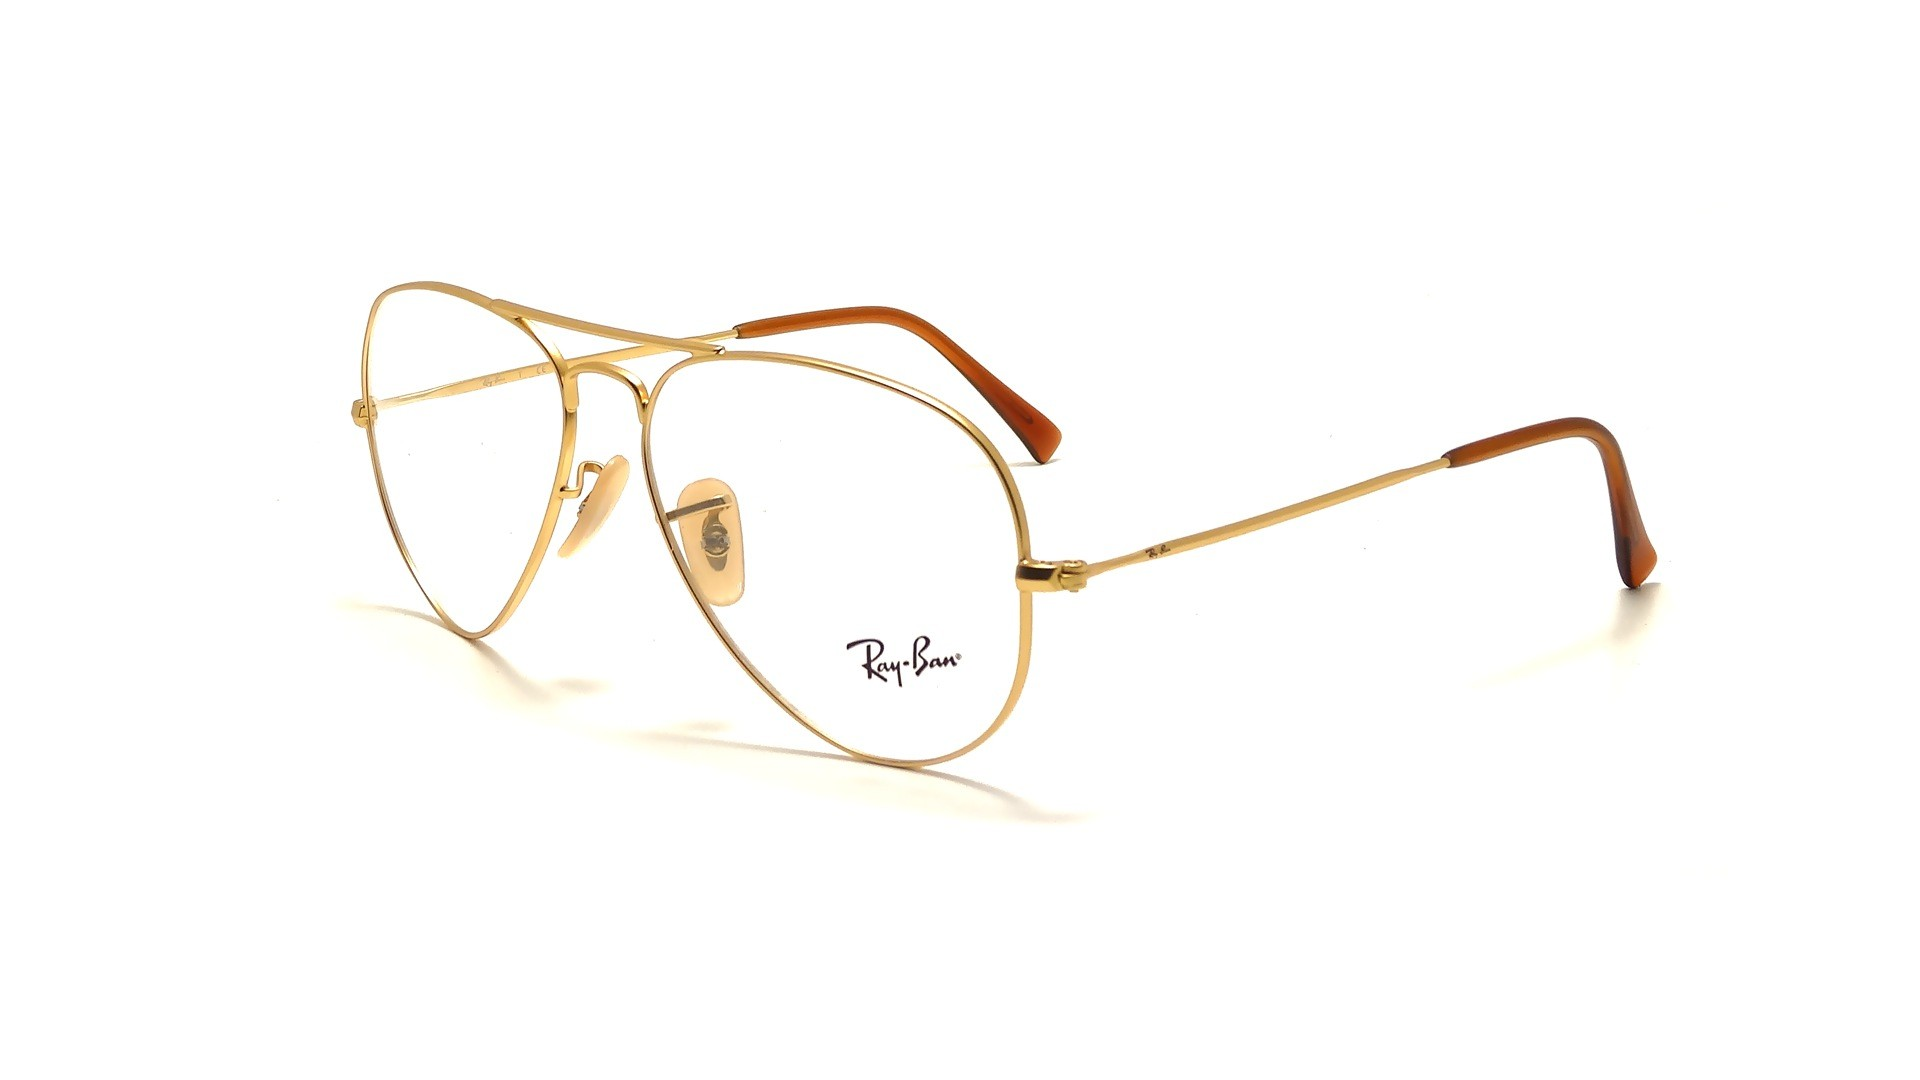 Ray Ban Glasses Large Frame : Eye glasses Ray Ban RX RB 6049 Aviator Large Metal 2730 ...